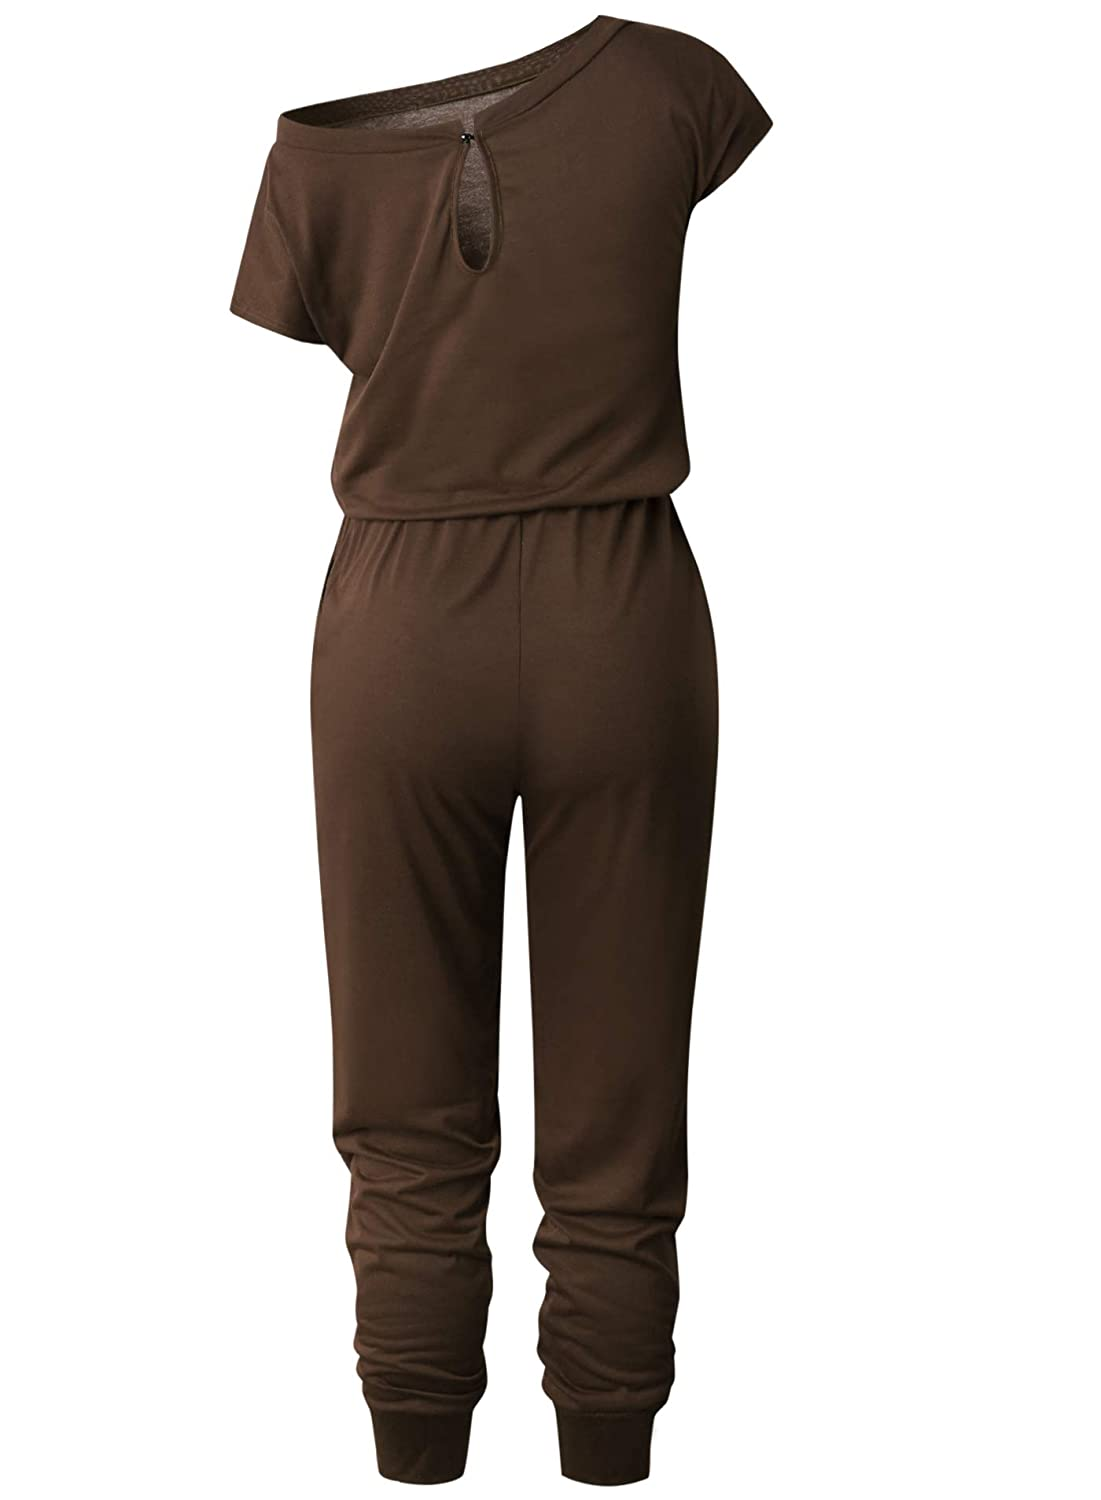 PRETTYGARDEN Womens Loose Solid Off Shoulder Elastic Waist Stretchy Long Romper Jumpsuit with Pockets